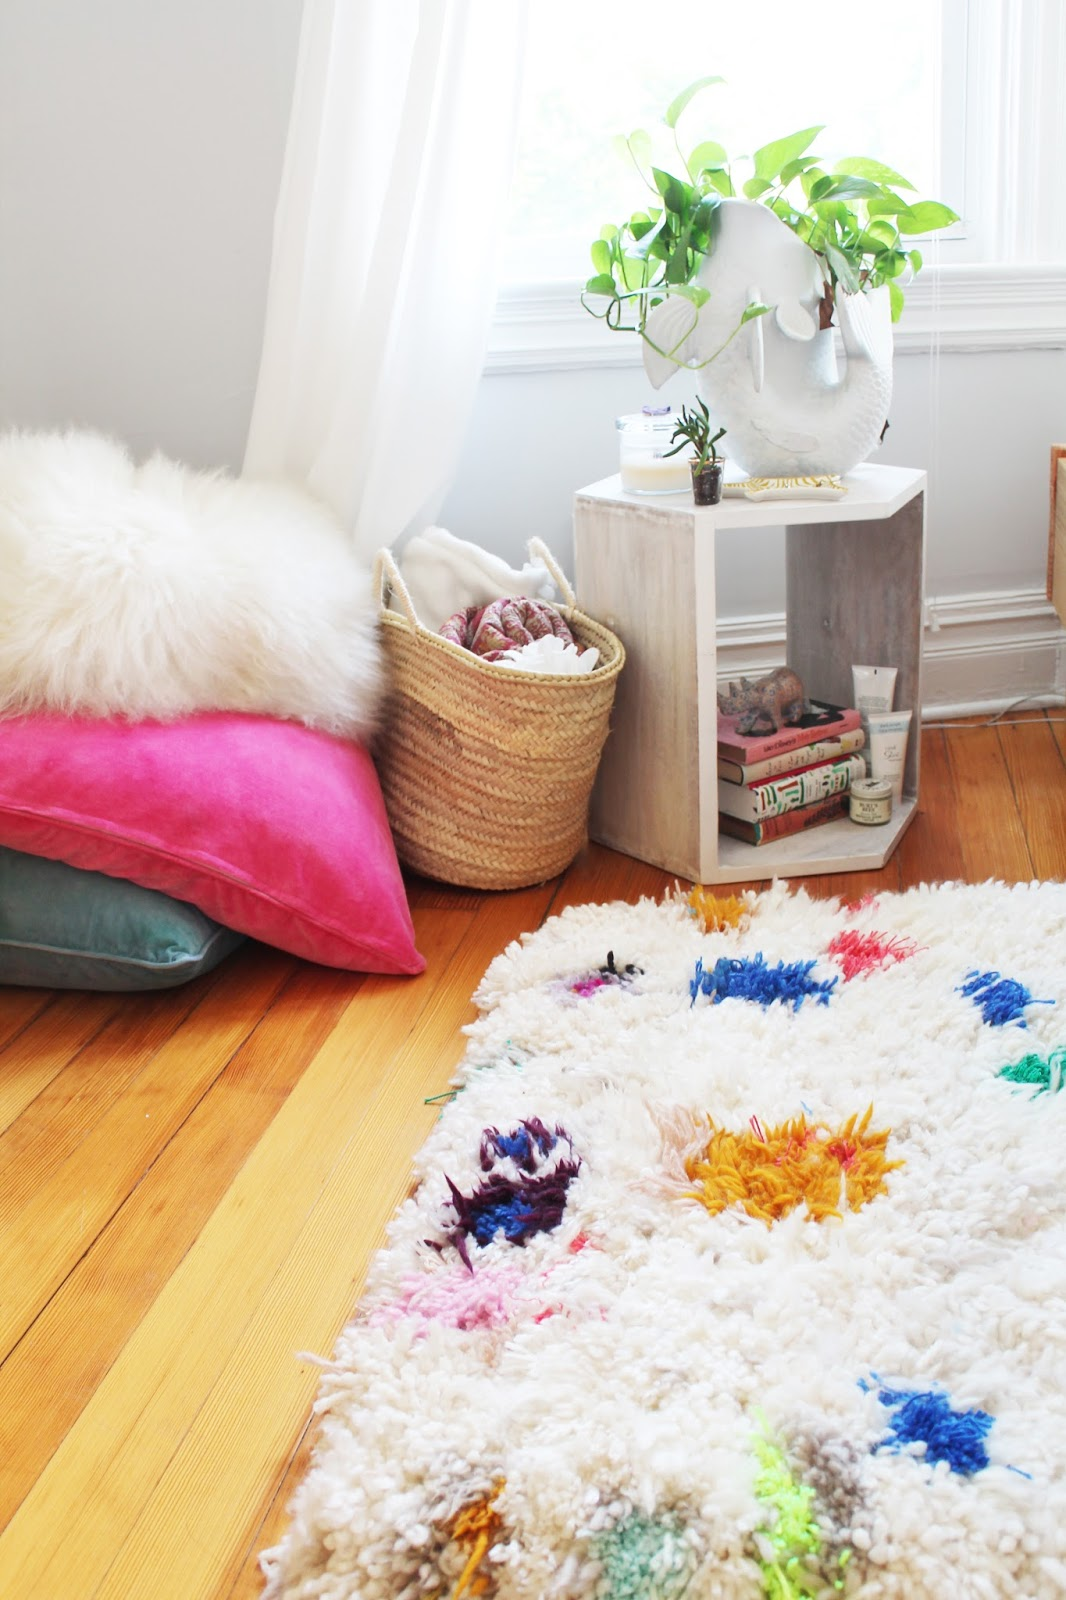 Design Diy Rug shag rug tutorial lindsey crafter diy yarn by crafter